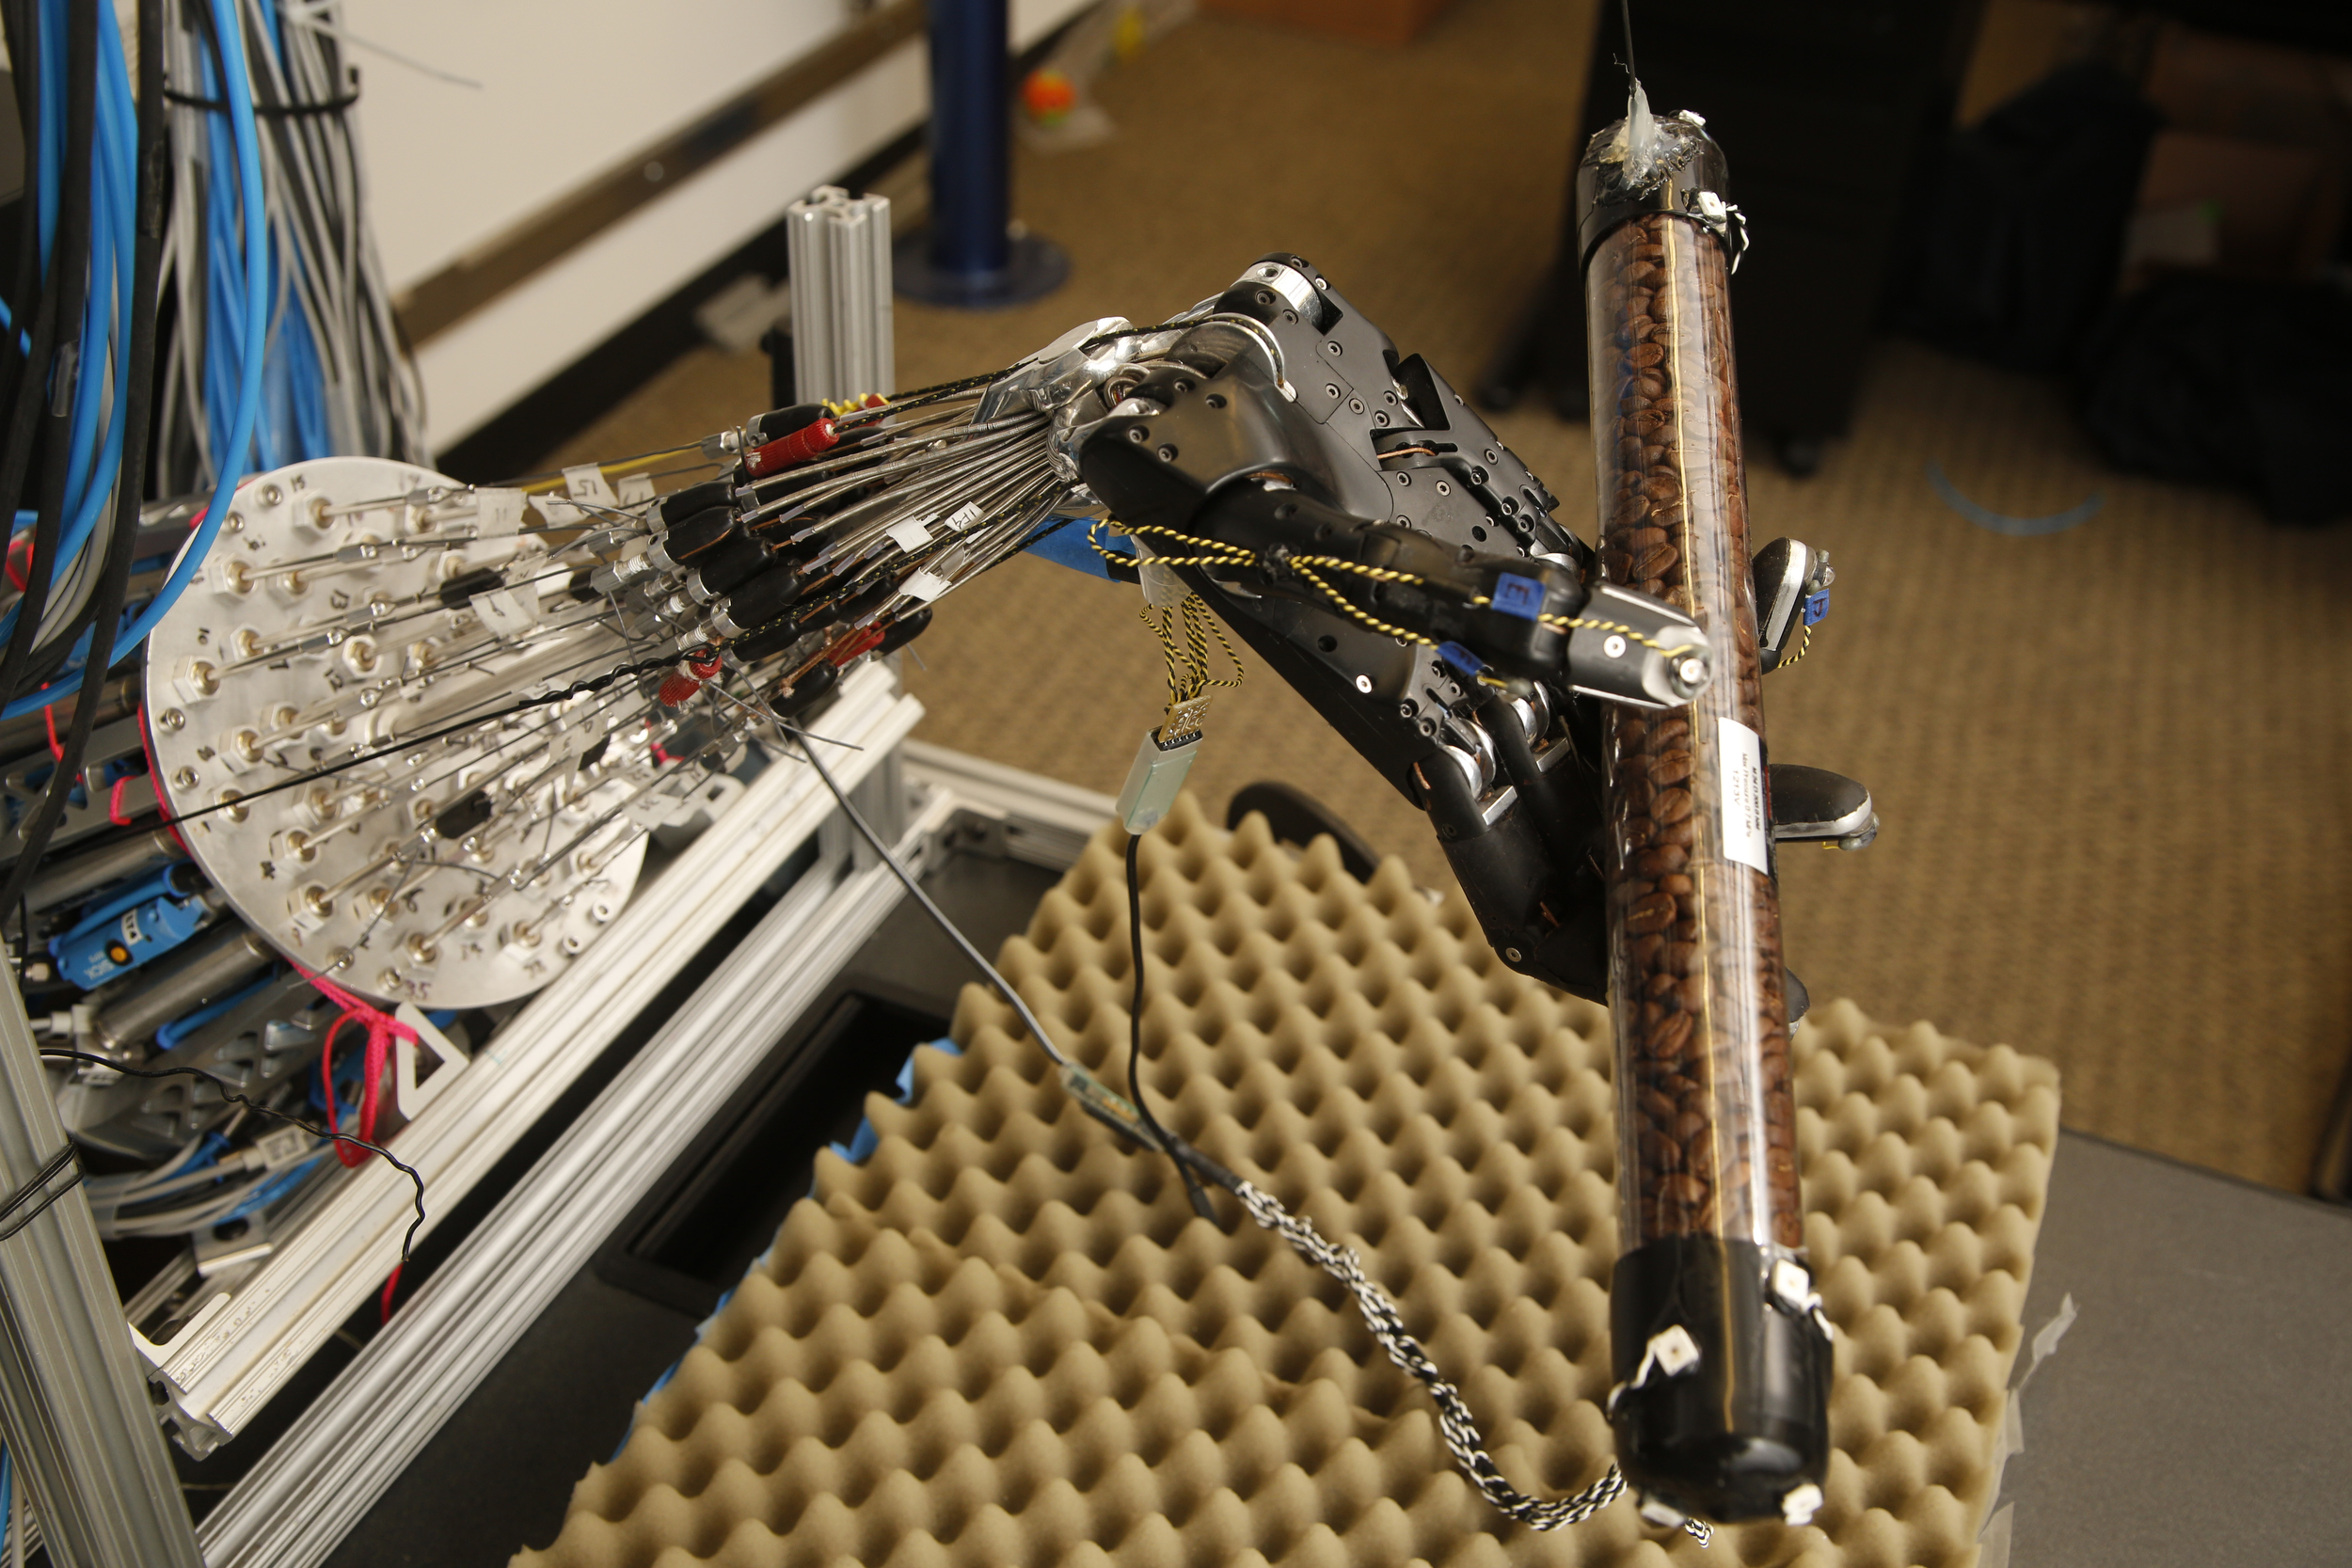 This five-fingered robot hand learns to get a grip on its